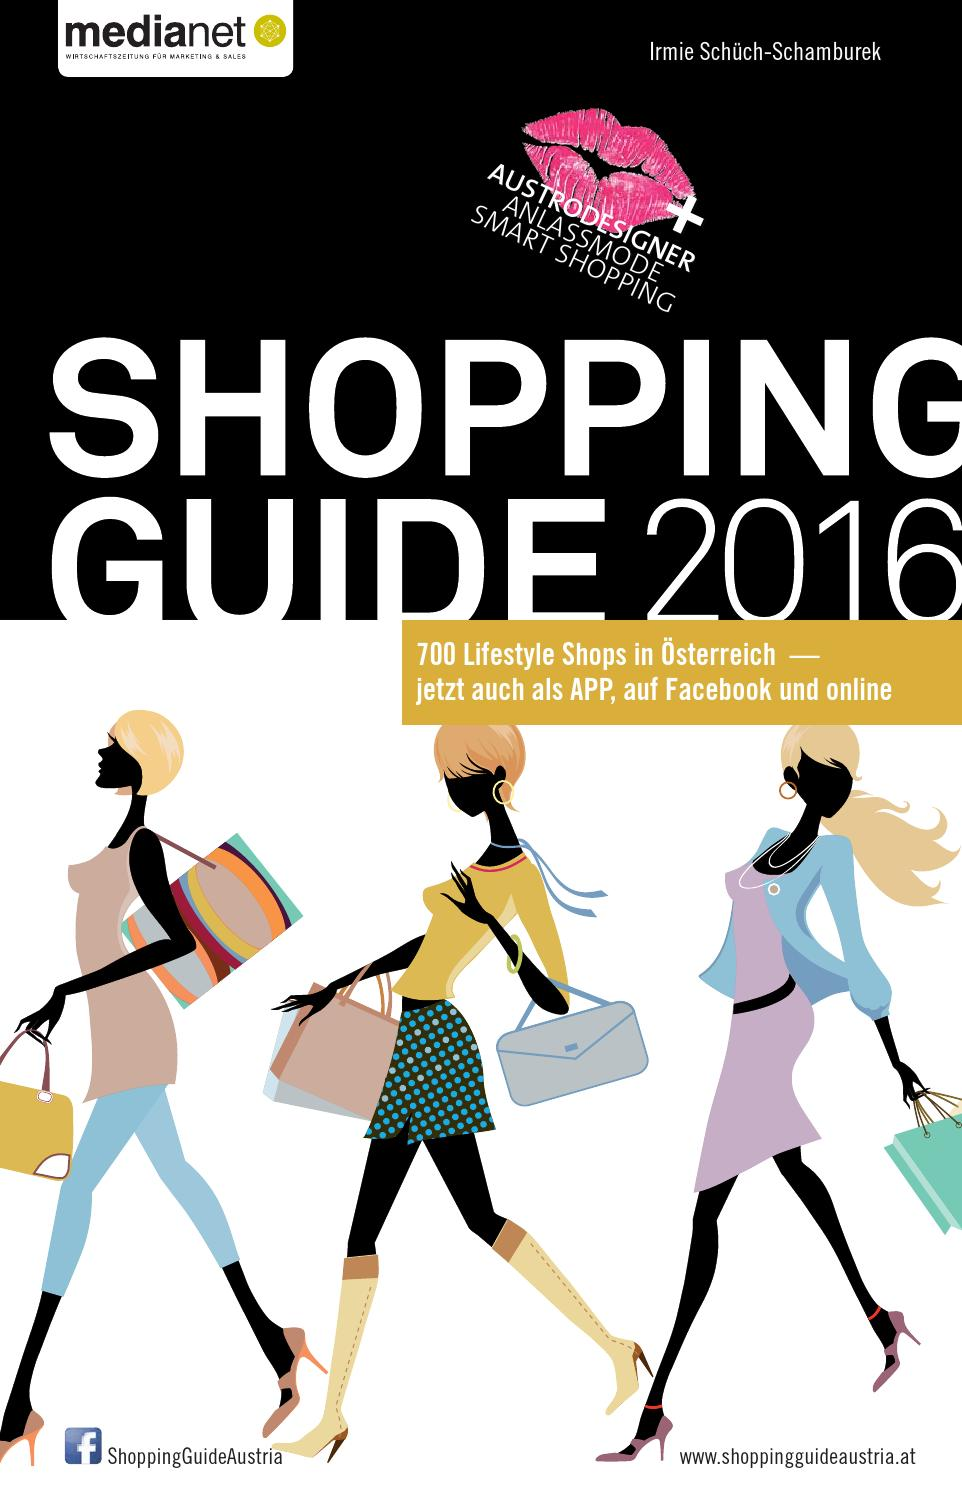 Shopping Guide 2016 by medianet issuu